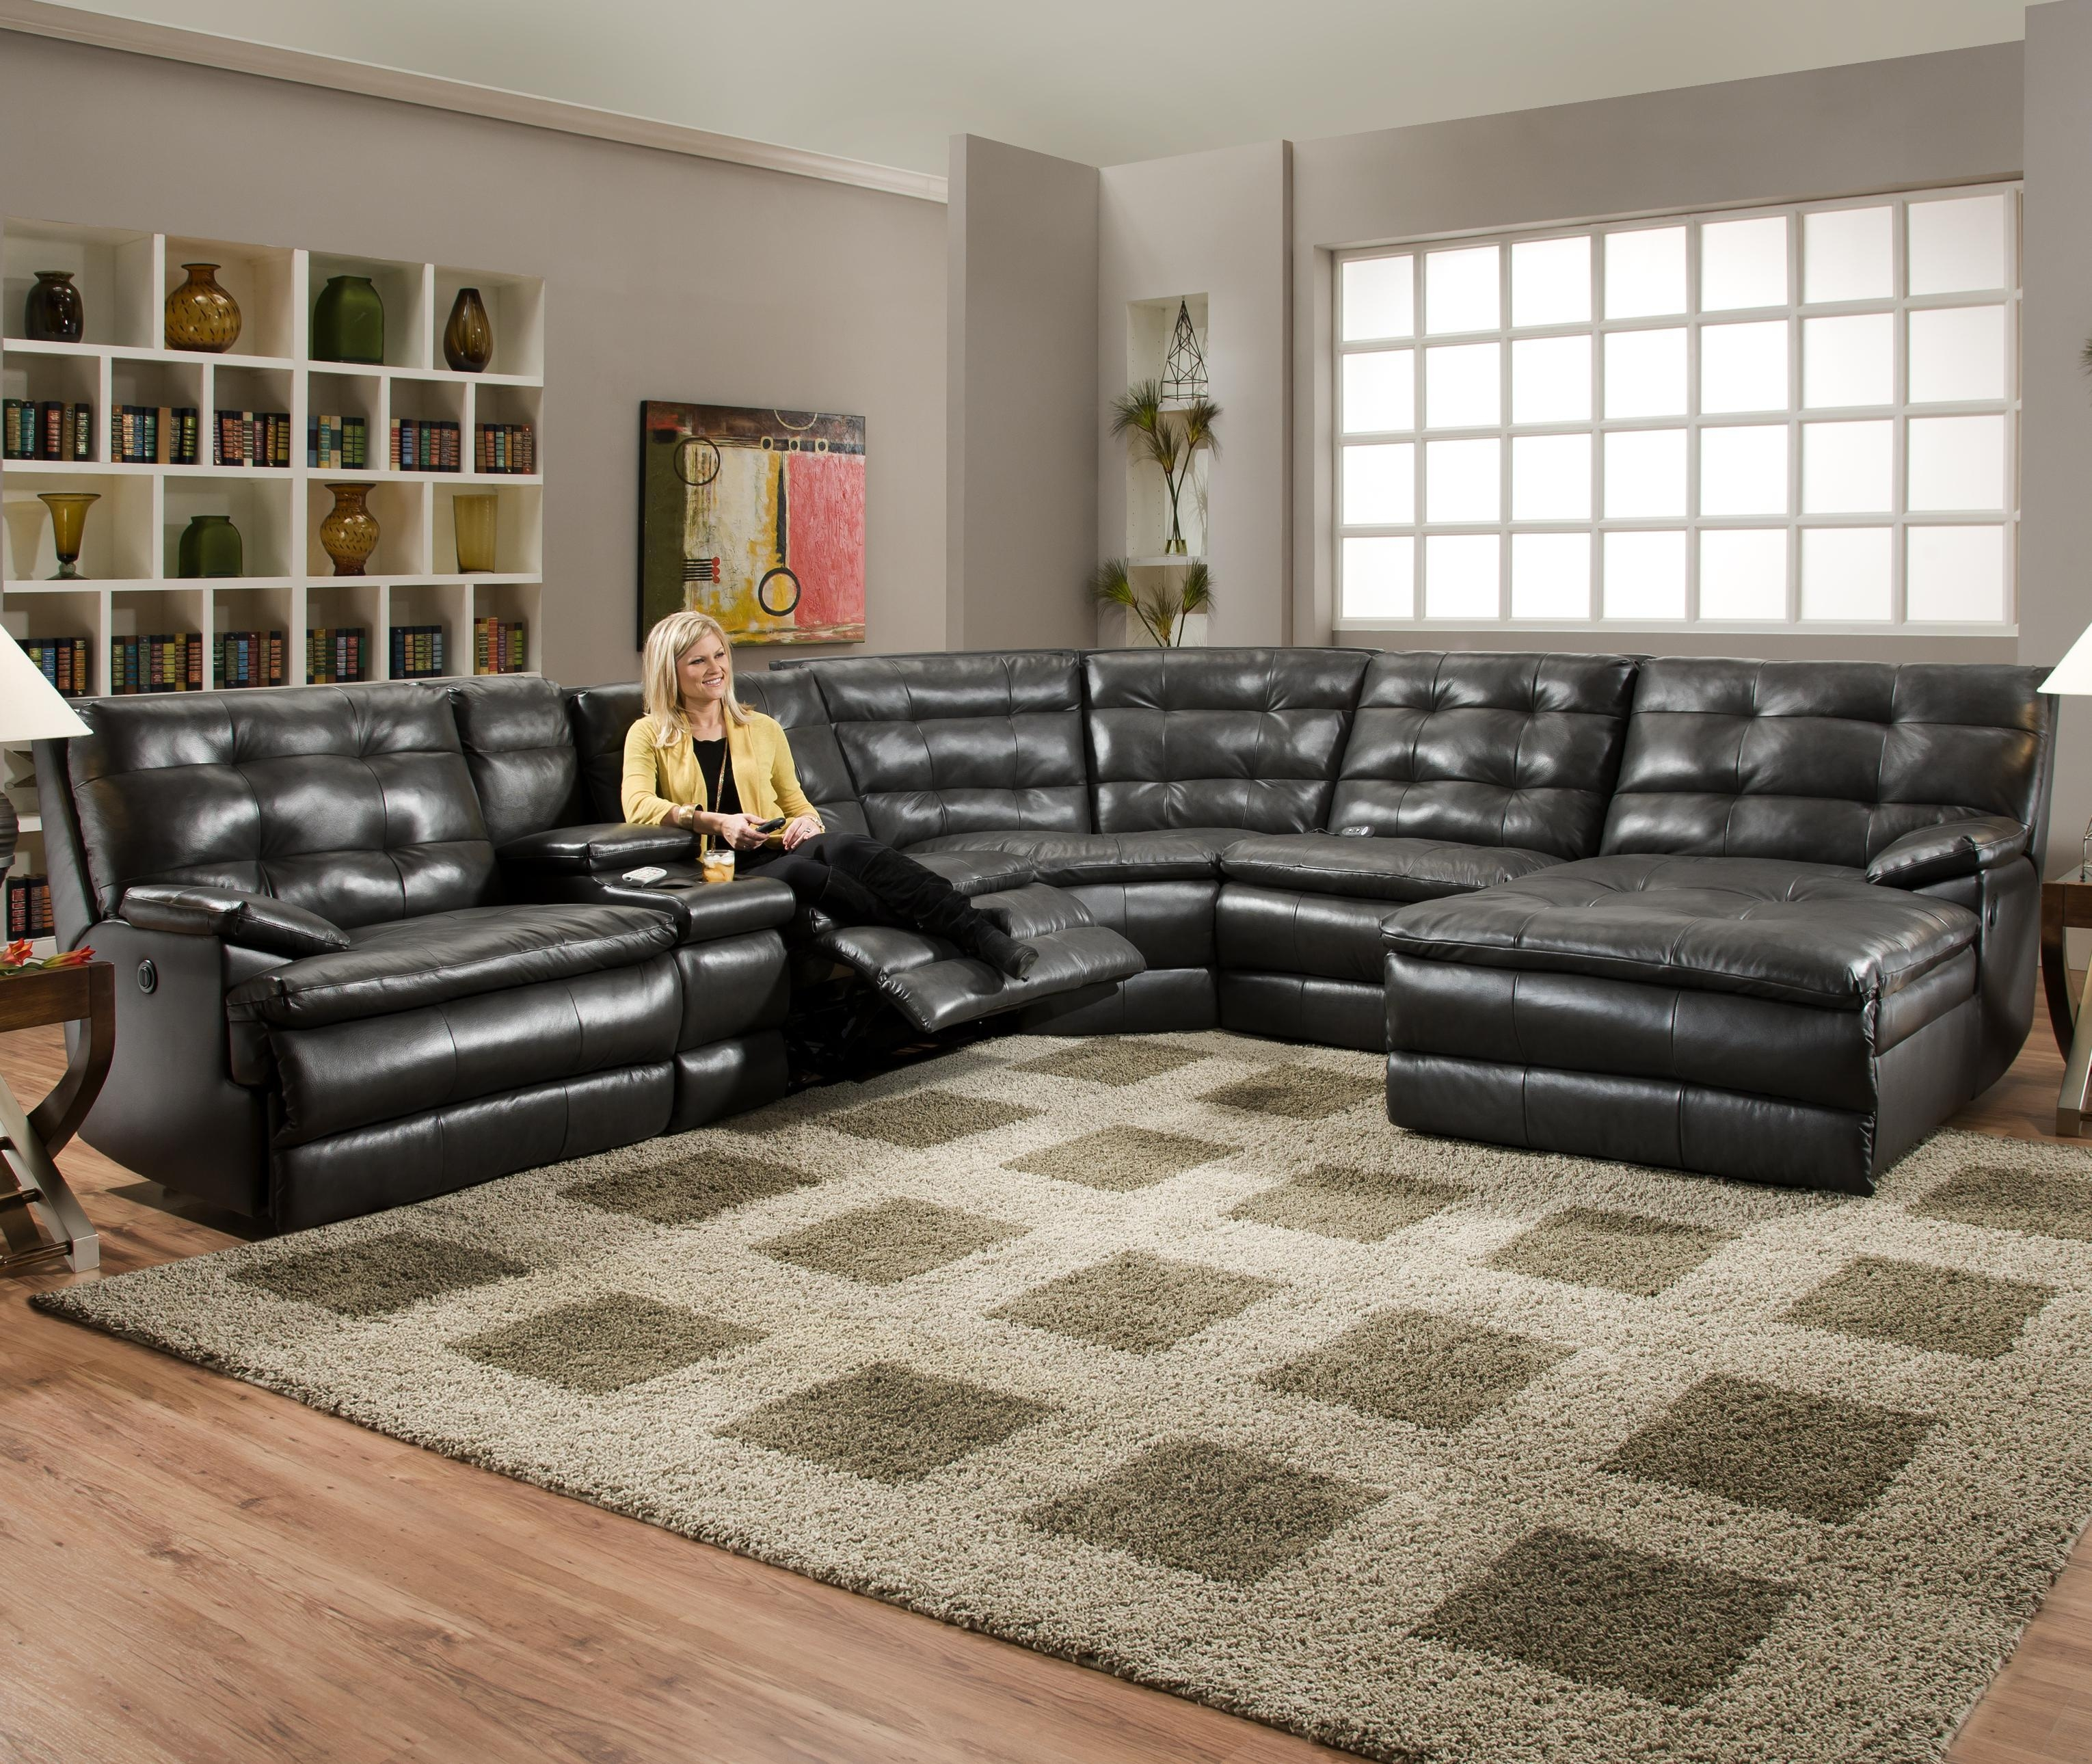 Furniture: Interesting Living Room Interior Using Large Sectional Within Huge Leather Sectional (Image 6 of 20)